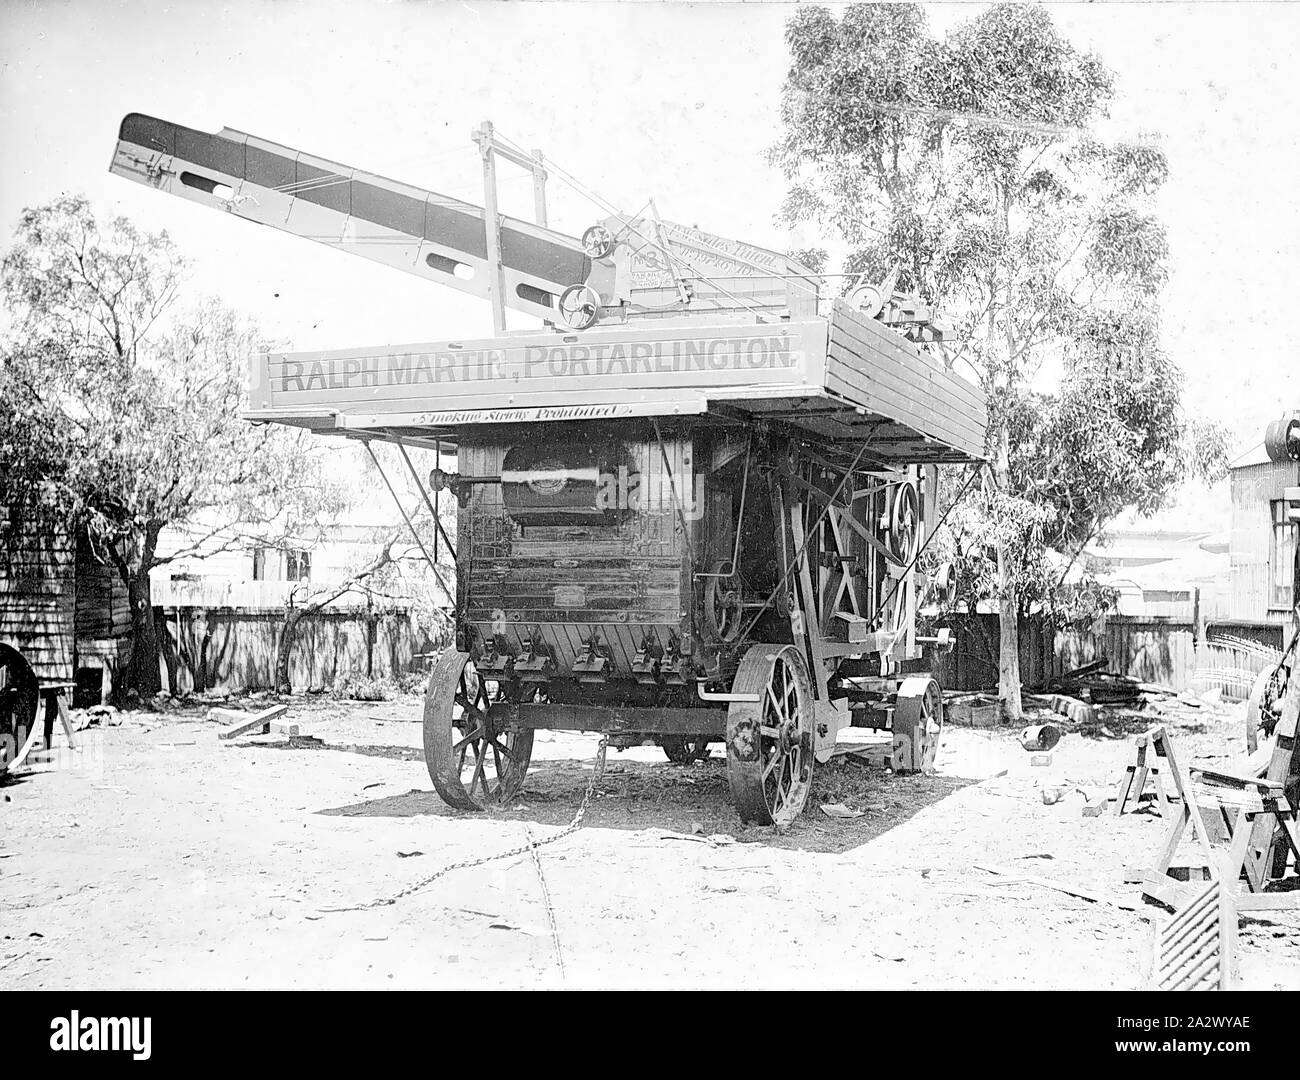 Negative - Threshing Machine, Ralph Martin, Portarlington, Victoria, circa 1915, Travelling threshing machine of contractor Ralph Martin, Portarlington, Victoria. The threshing machine is fitted with a patent sheaf elevator and feeder labelled P.W. Sides' Patent, No.19746/10. No.3, Sawmill, ???, Geelong Stock Photo